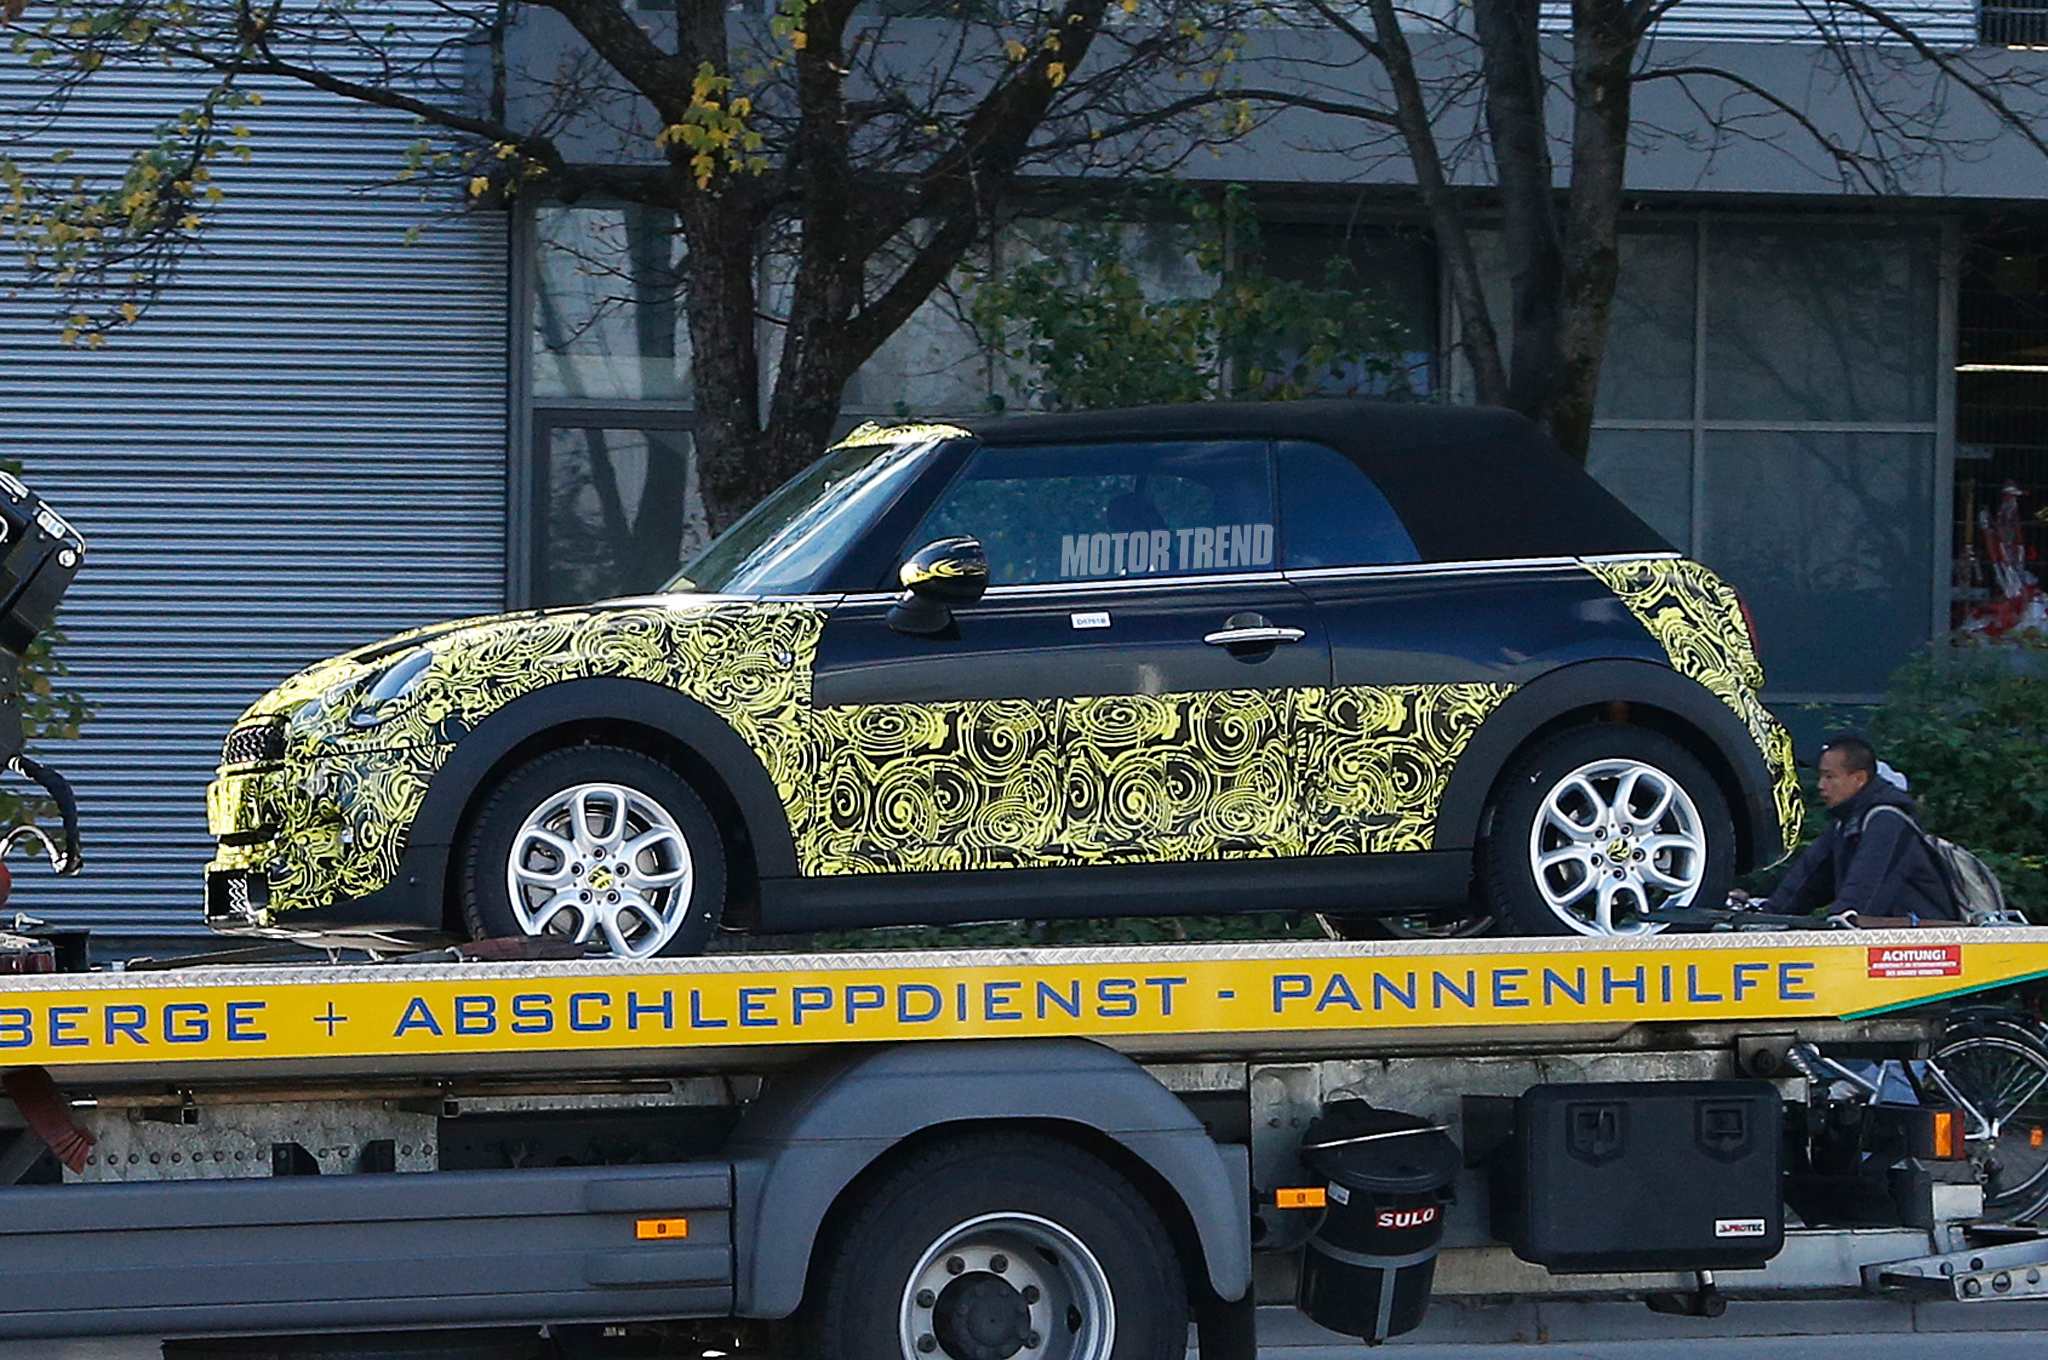 2015 Mini Cooper S Convertible Spied on a Flatbed